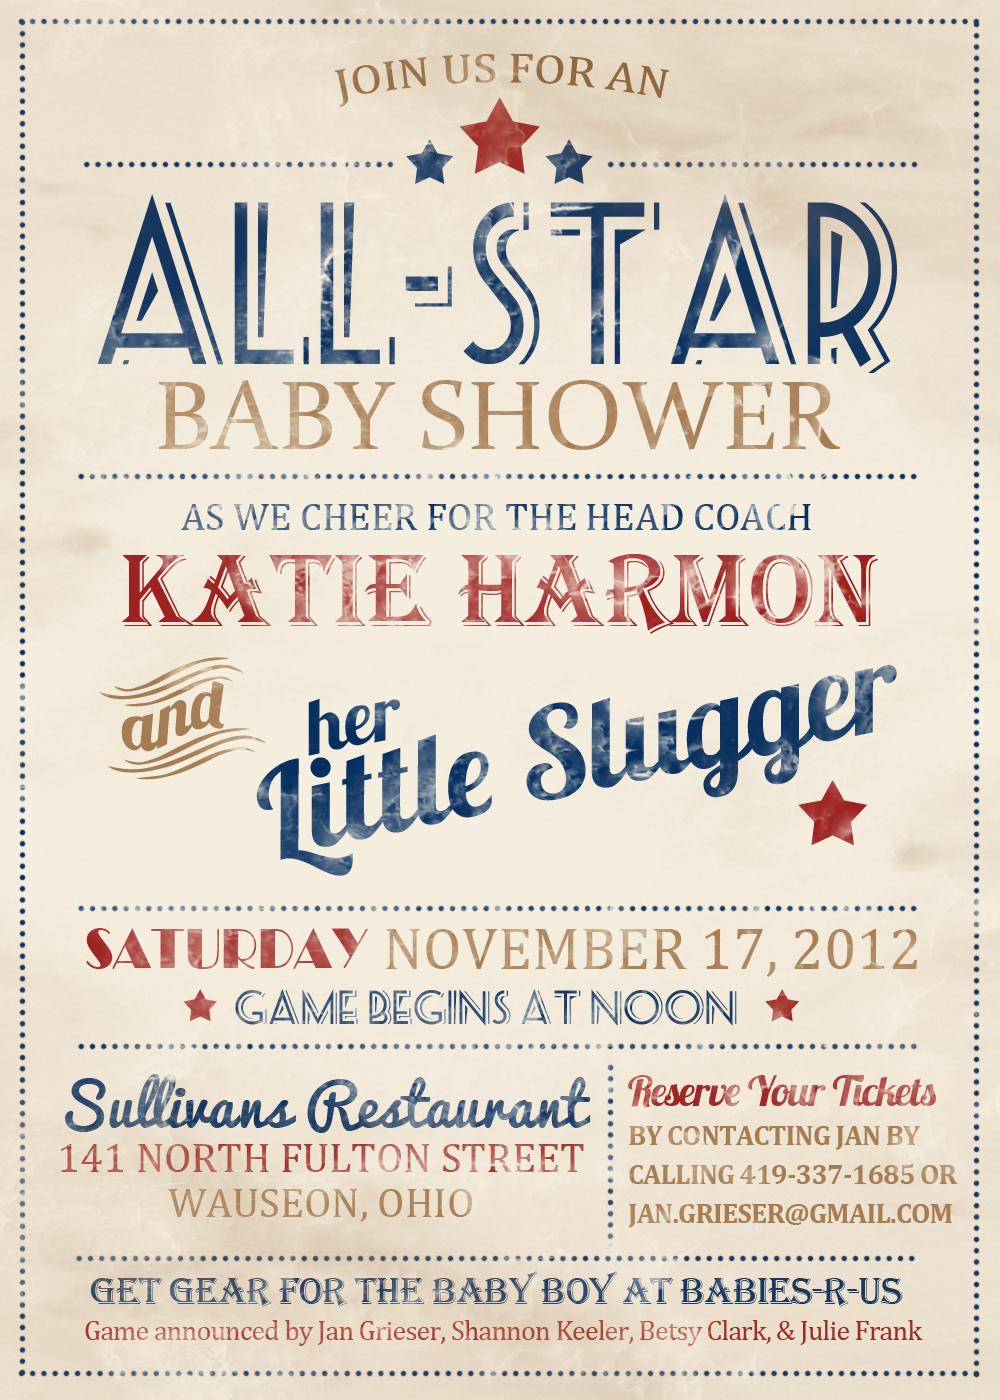 baseball themed baby shower invitation with vintage feel